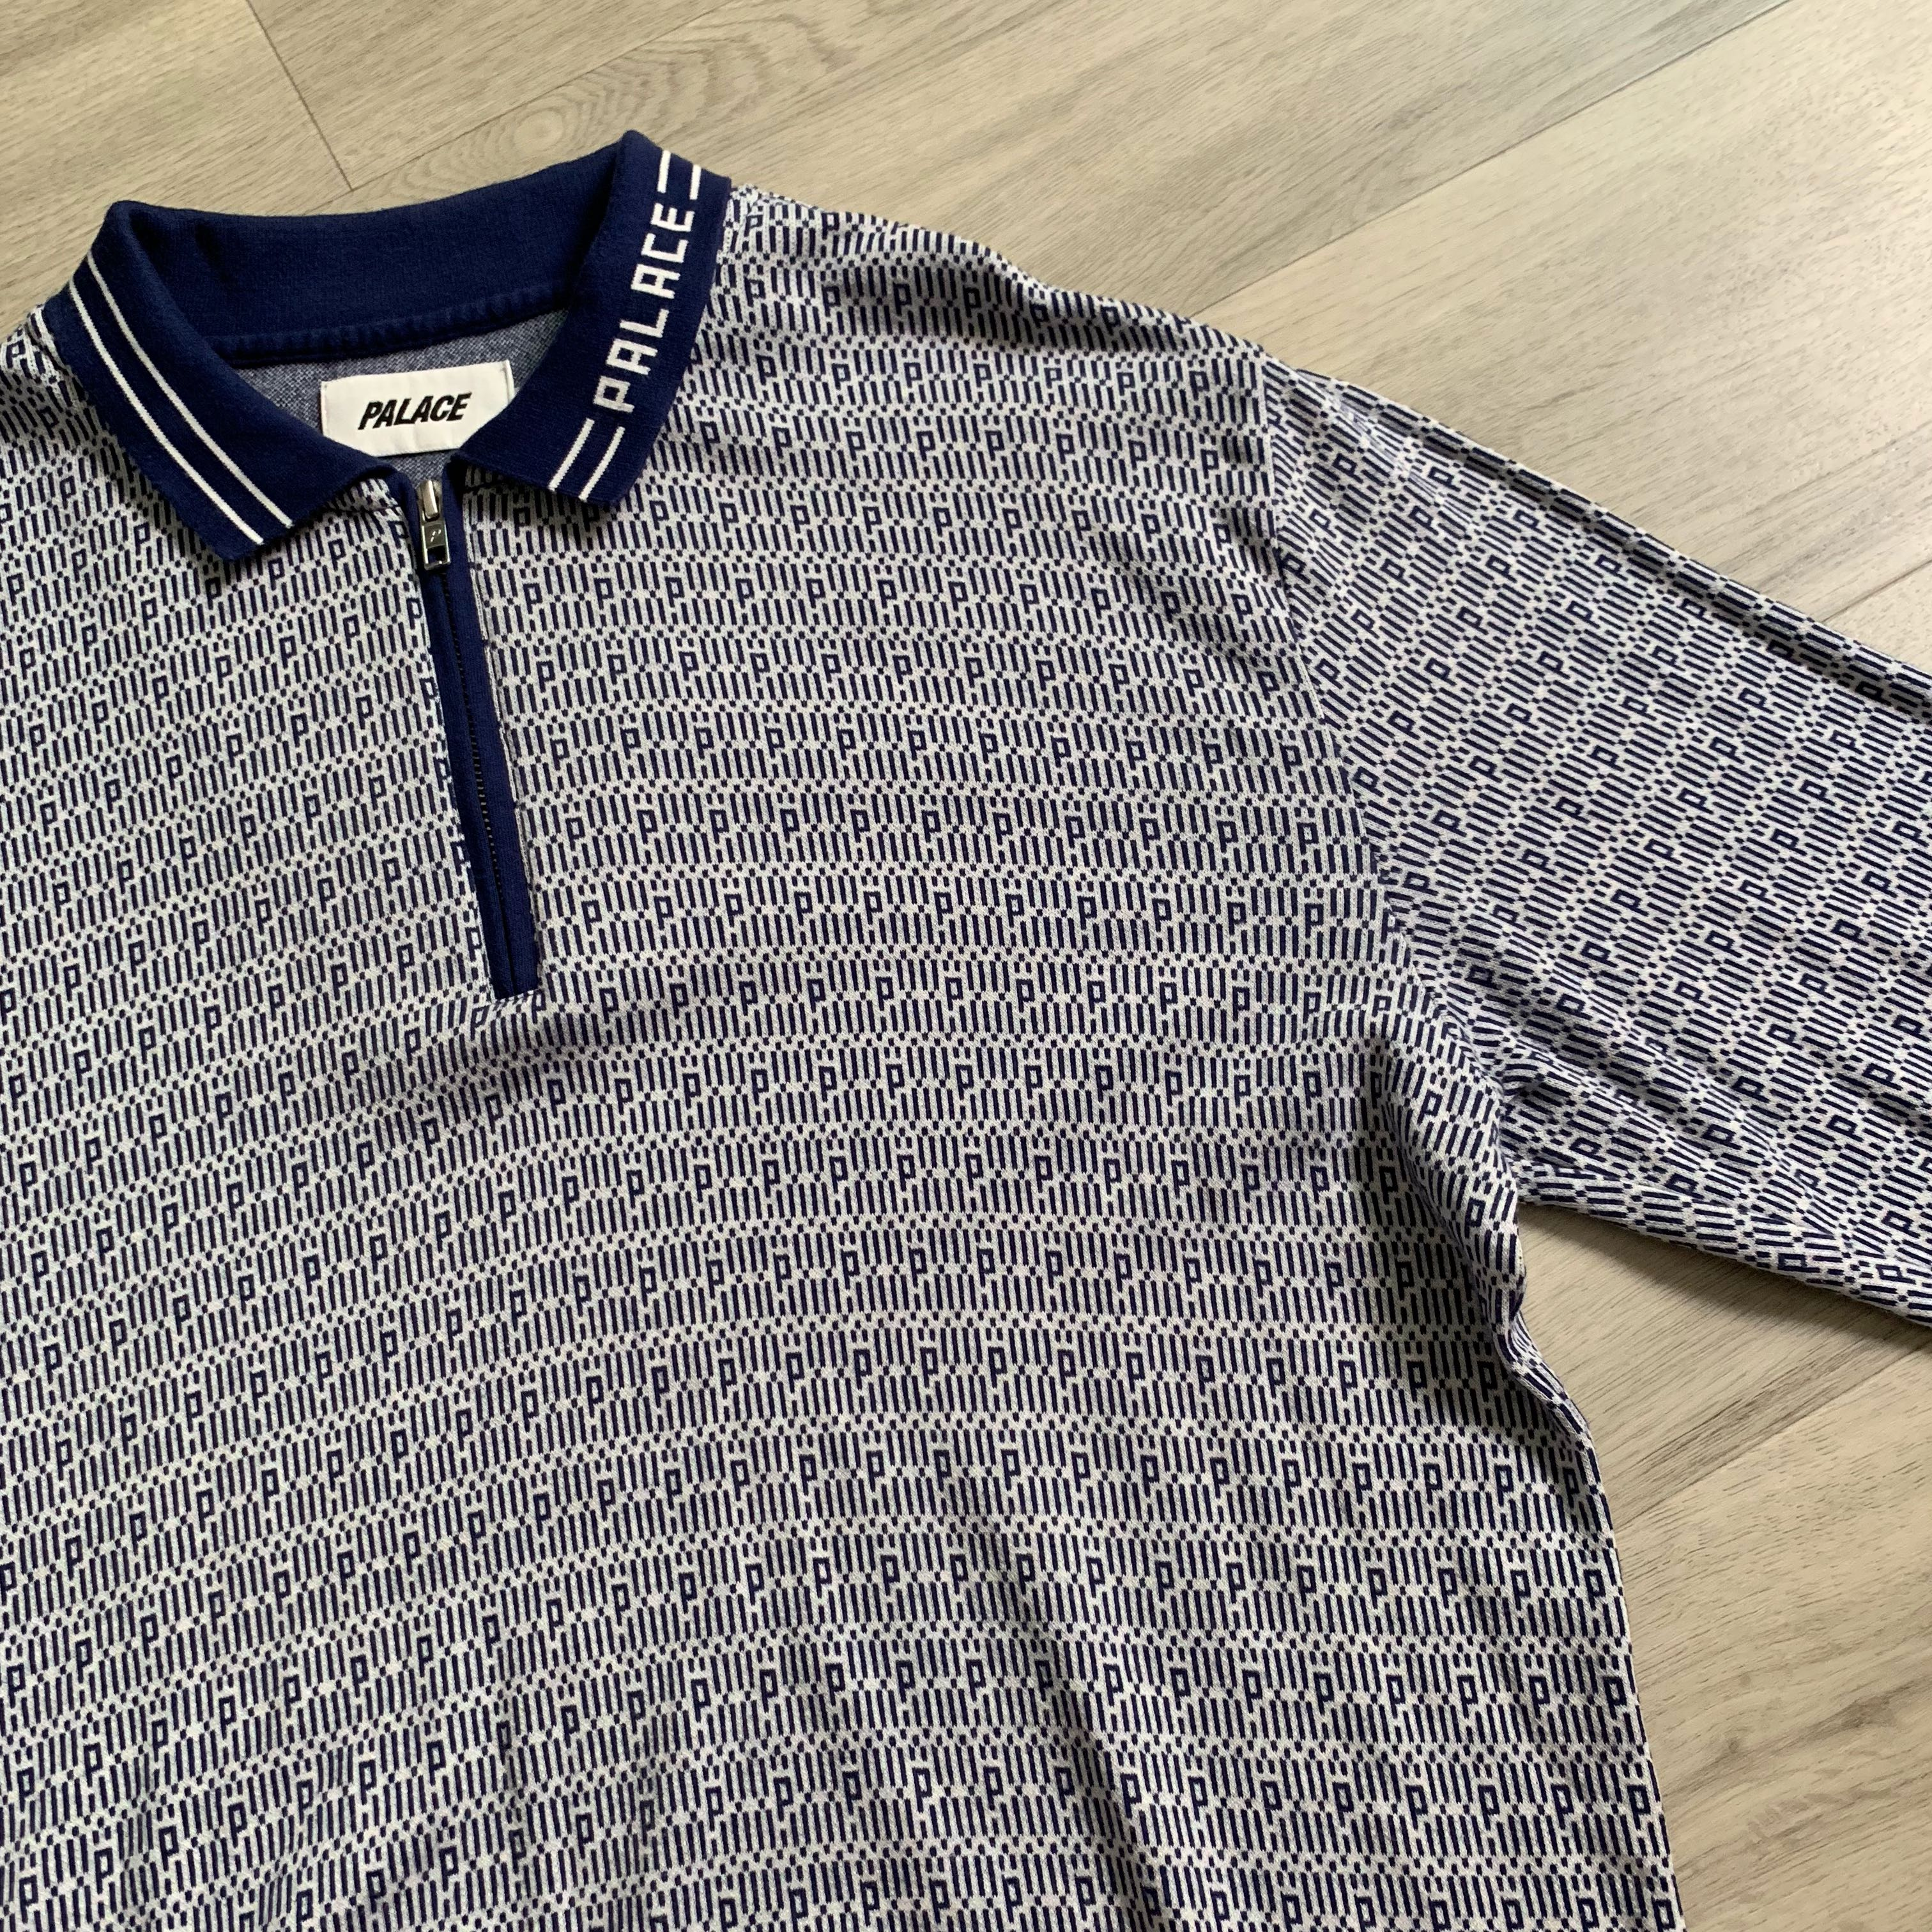 f73b3bff Palace marco p knit zip up polo, Men's Fashion, Clothes, Tops on Carousell